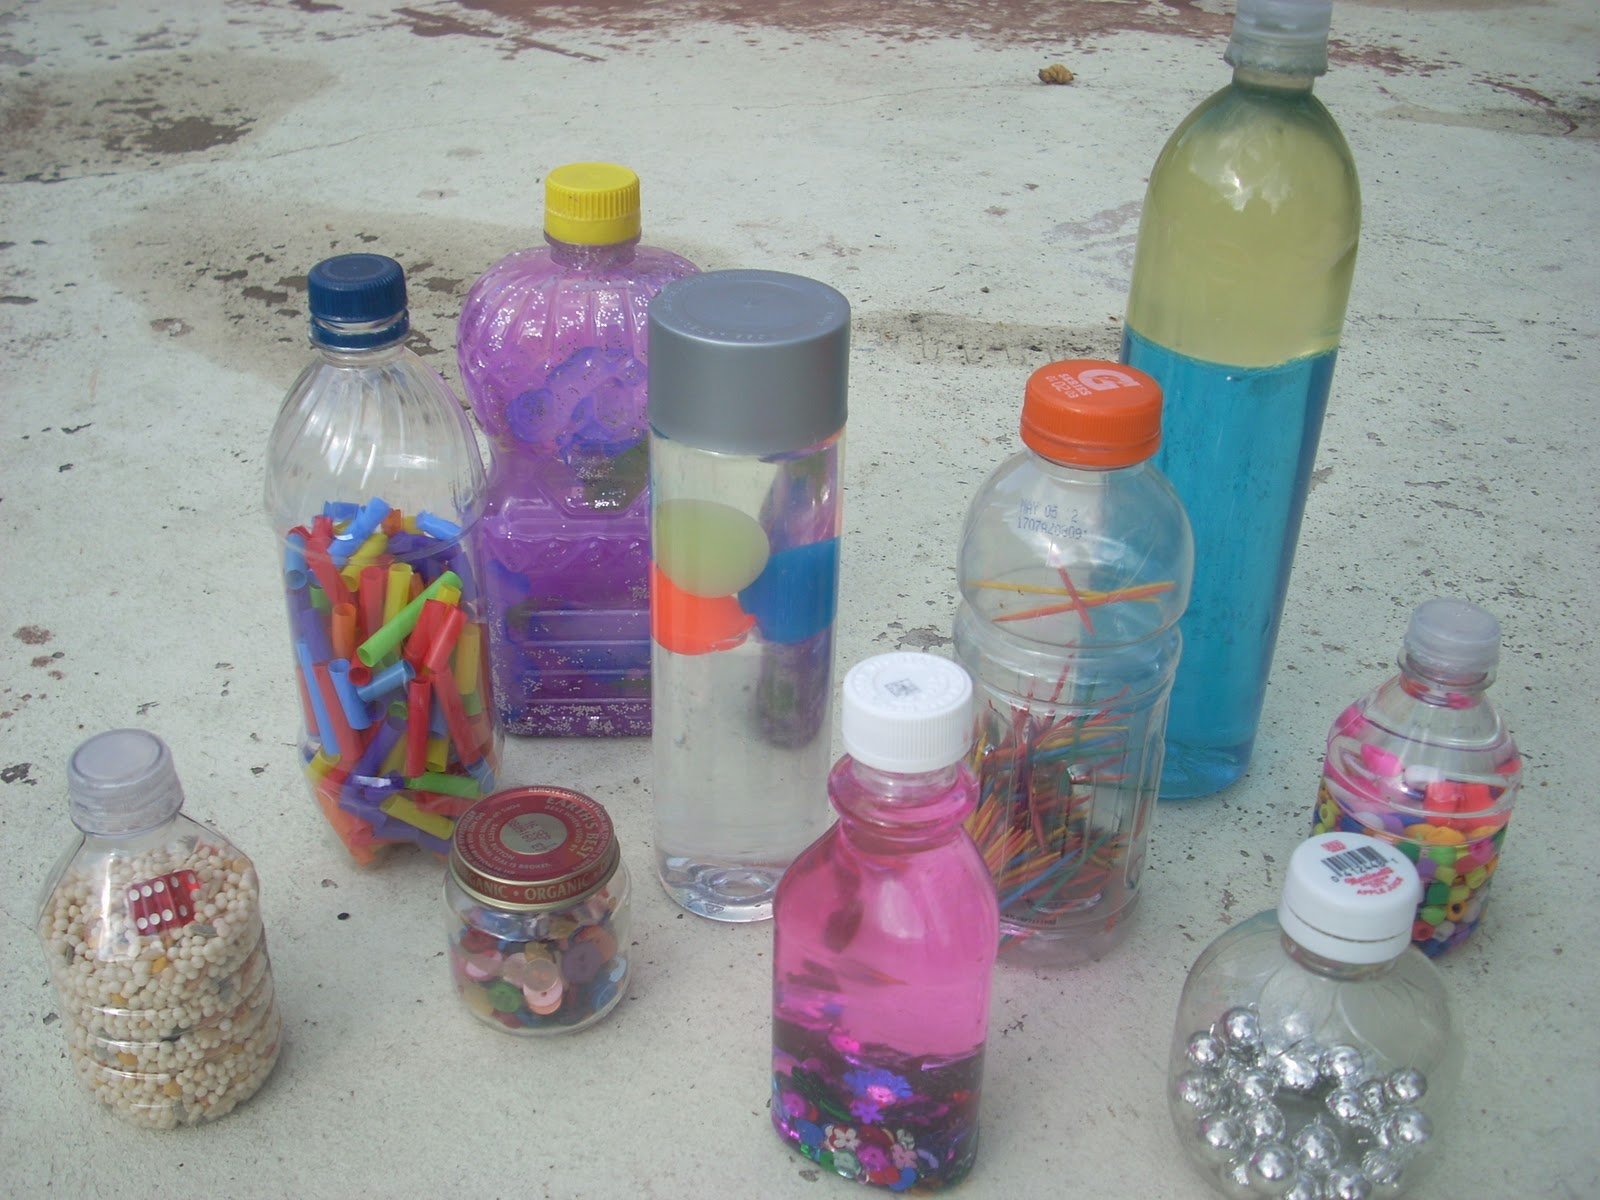 Interesting Bottles Post Apocalyptic Homeschool Sensory And Discovery Bottles For